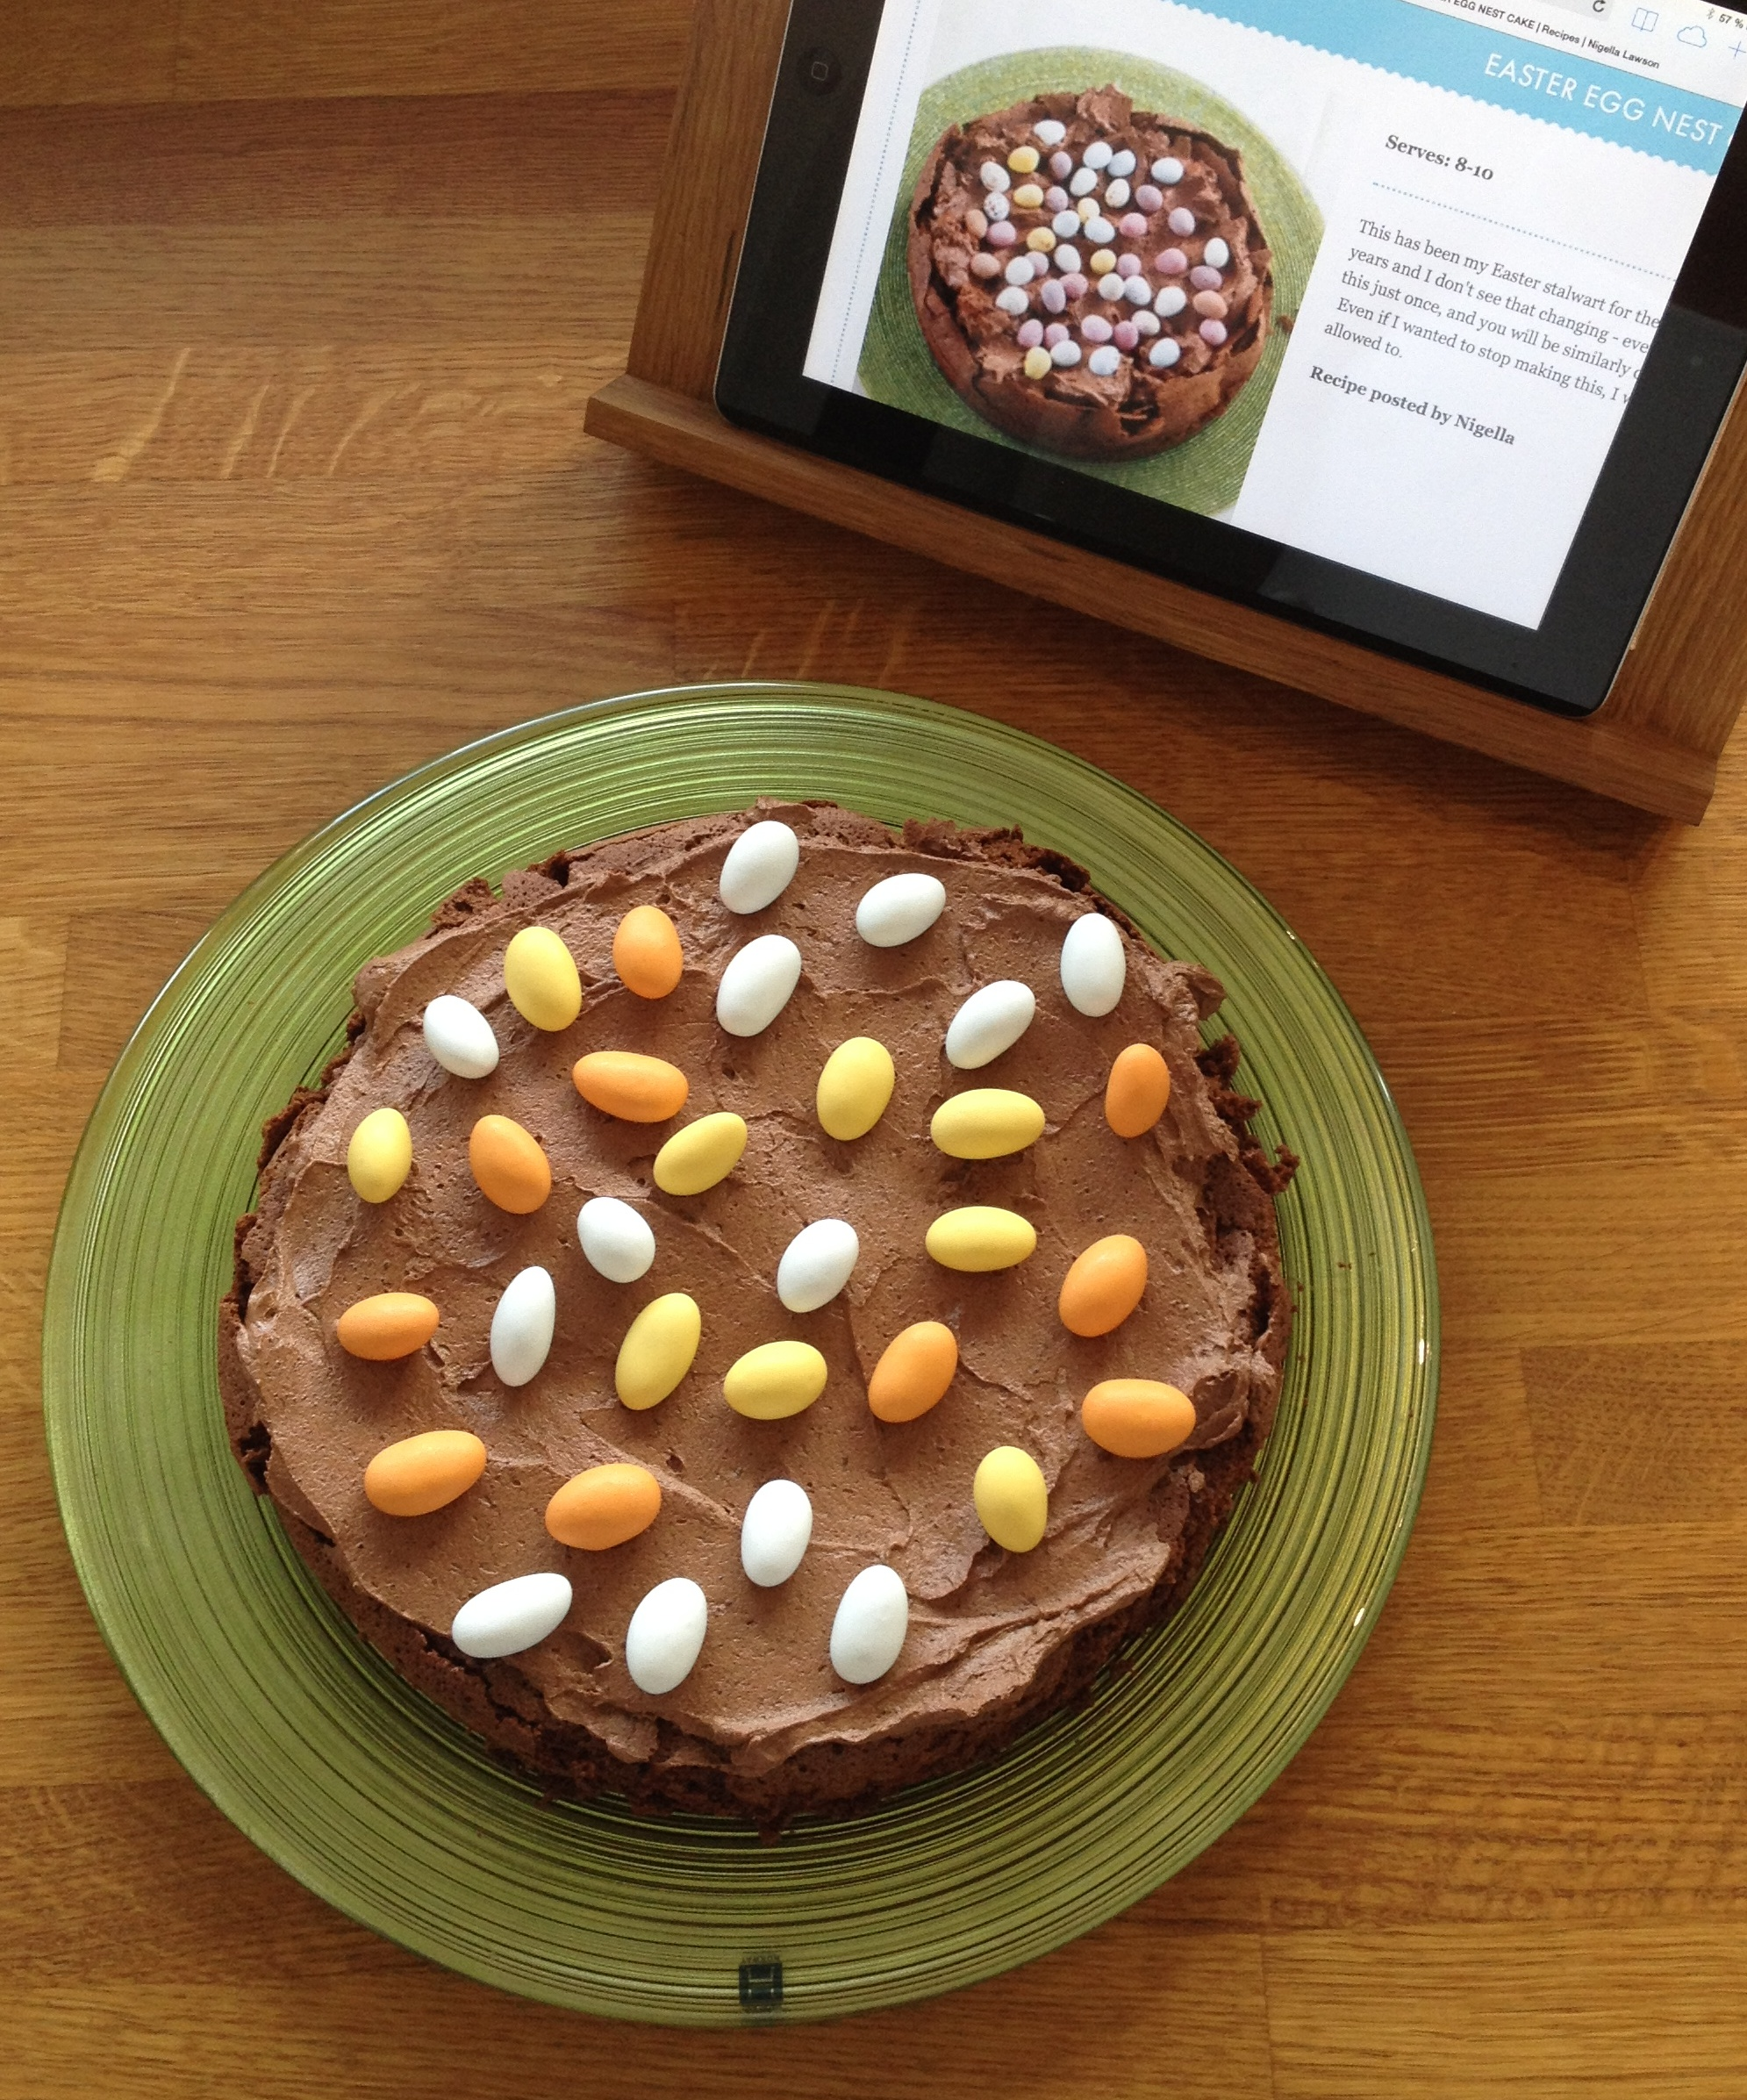 My version of Nigella easter egg nest cake